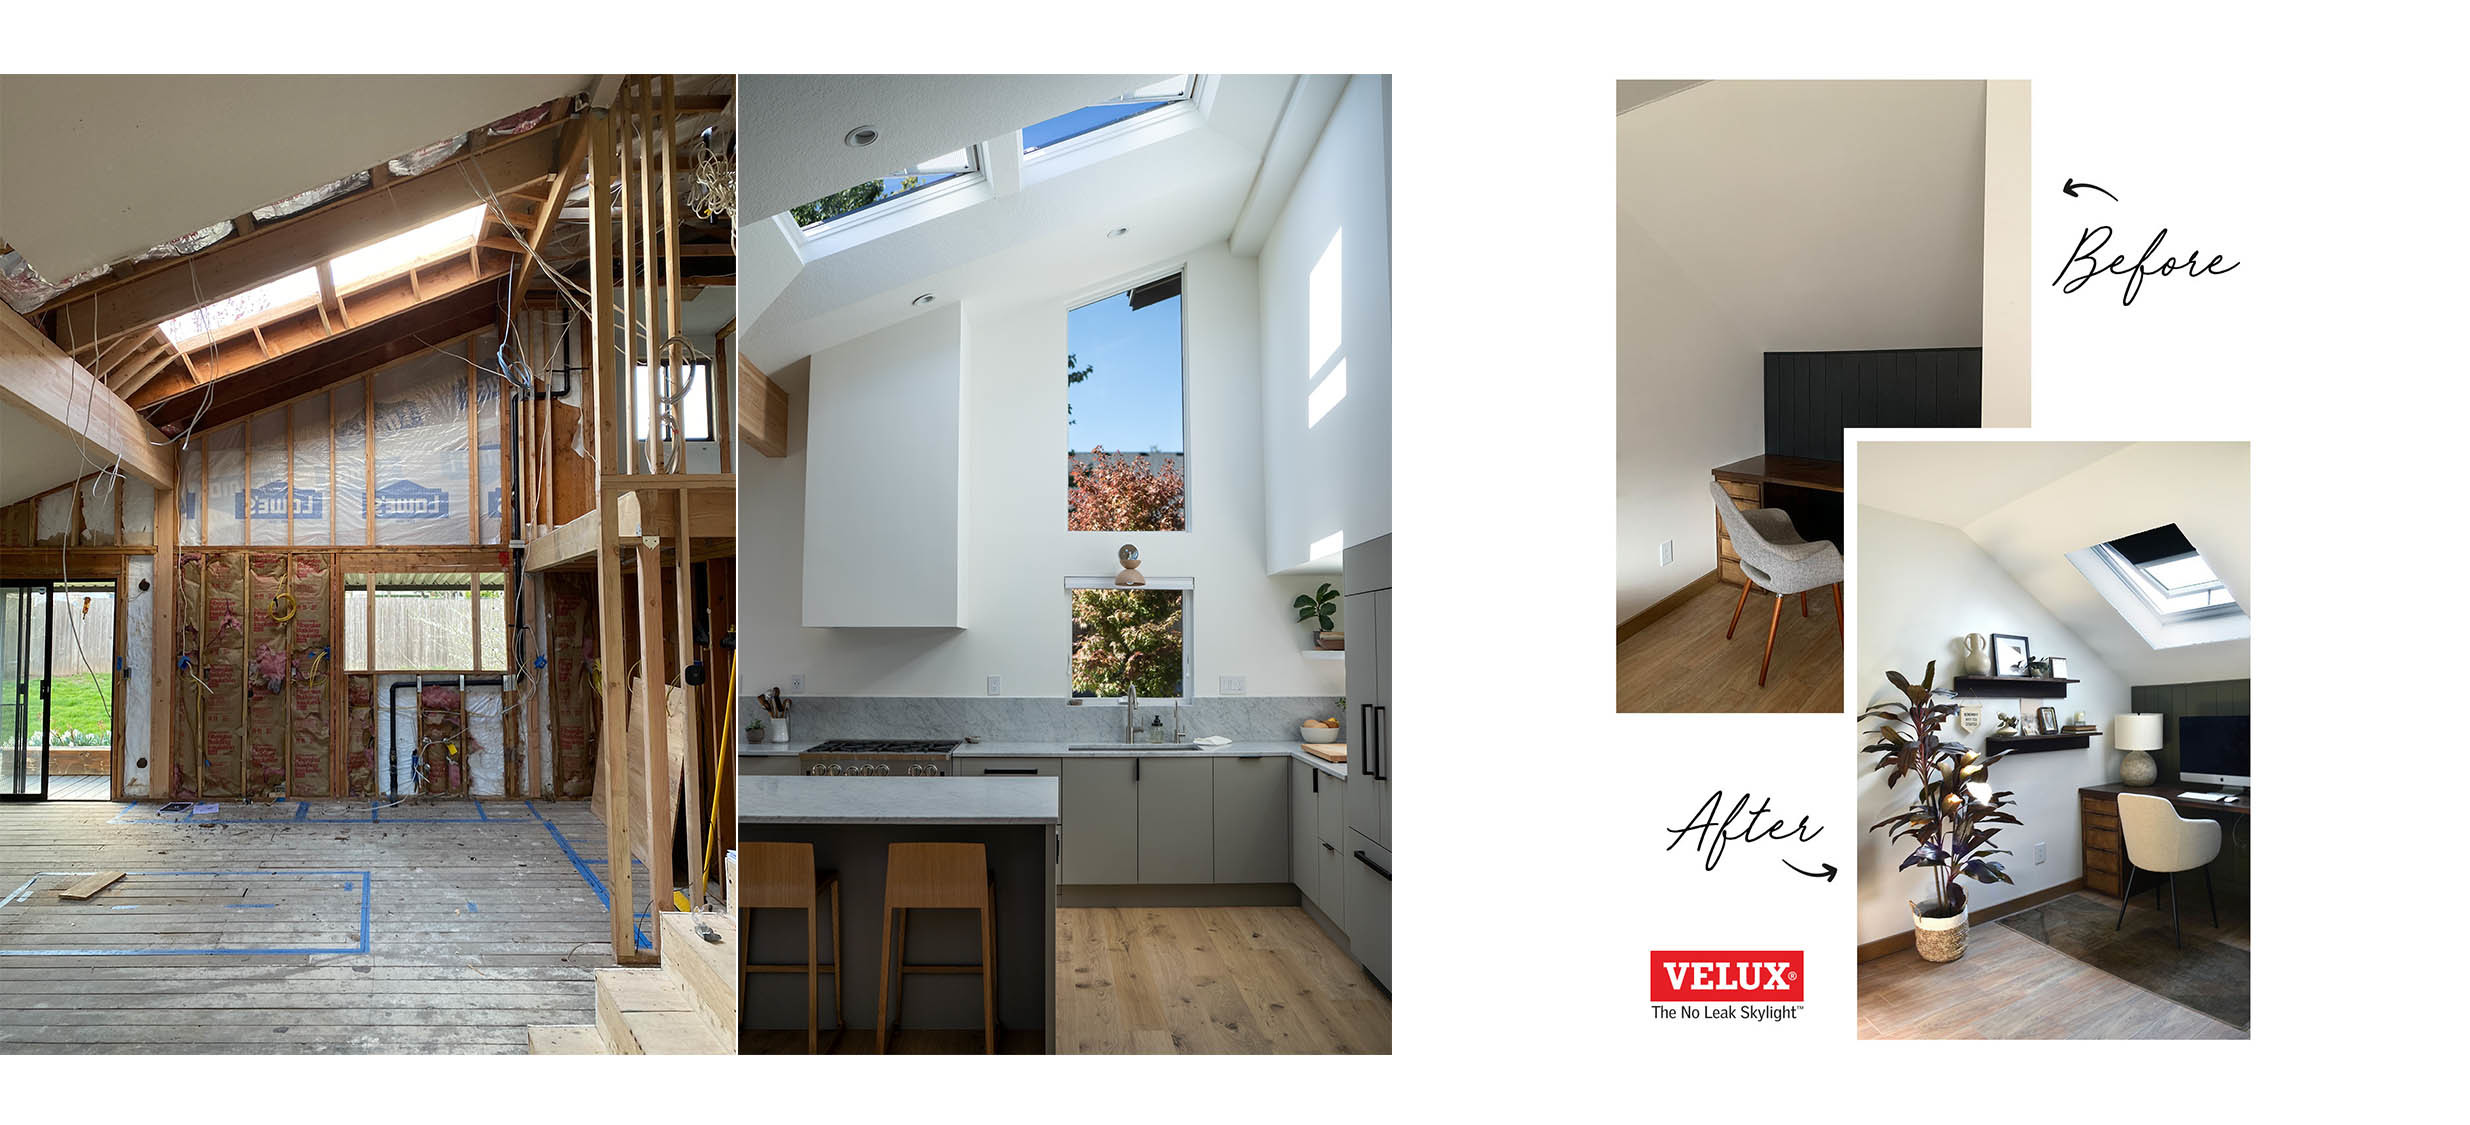 10 15 20 insets velux